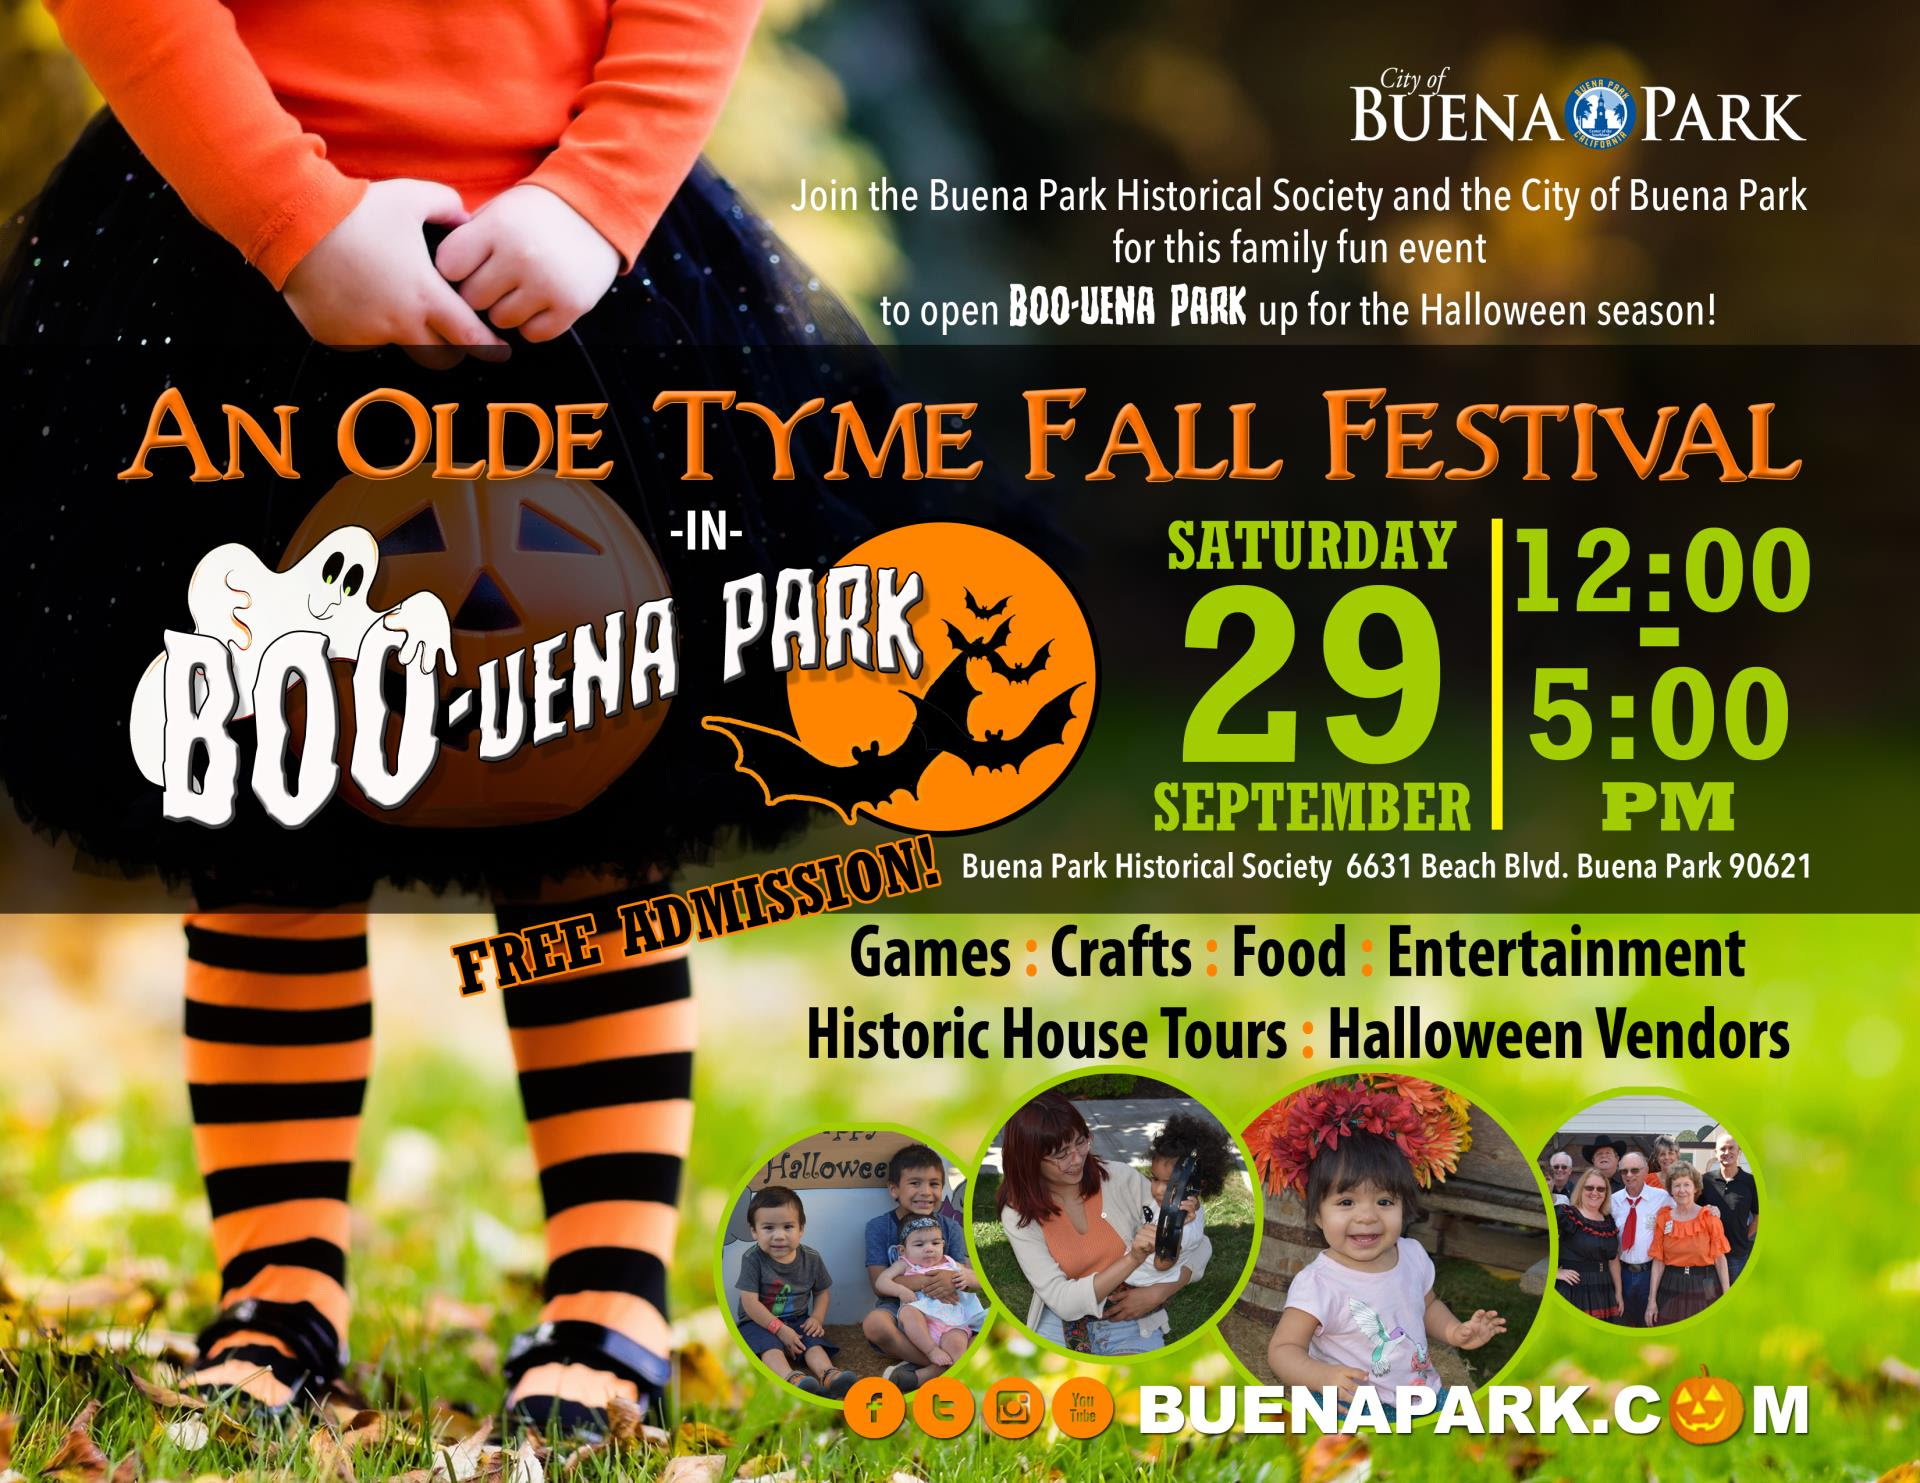 2nd Annual Old Tyme Fall Festival